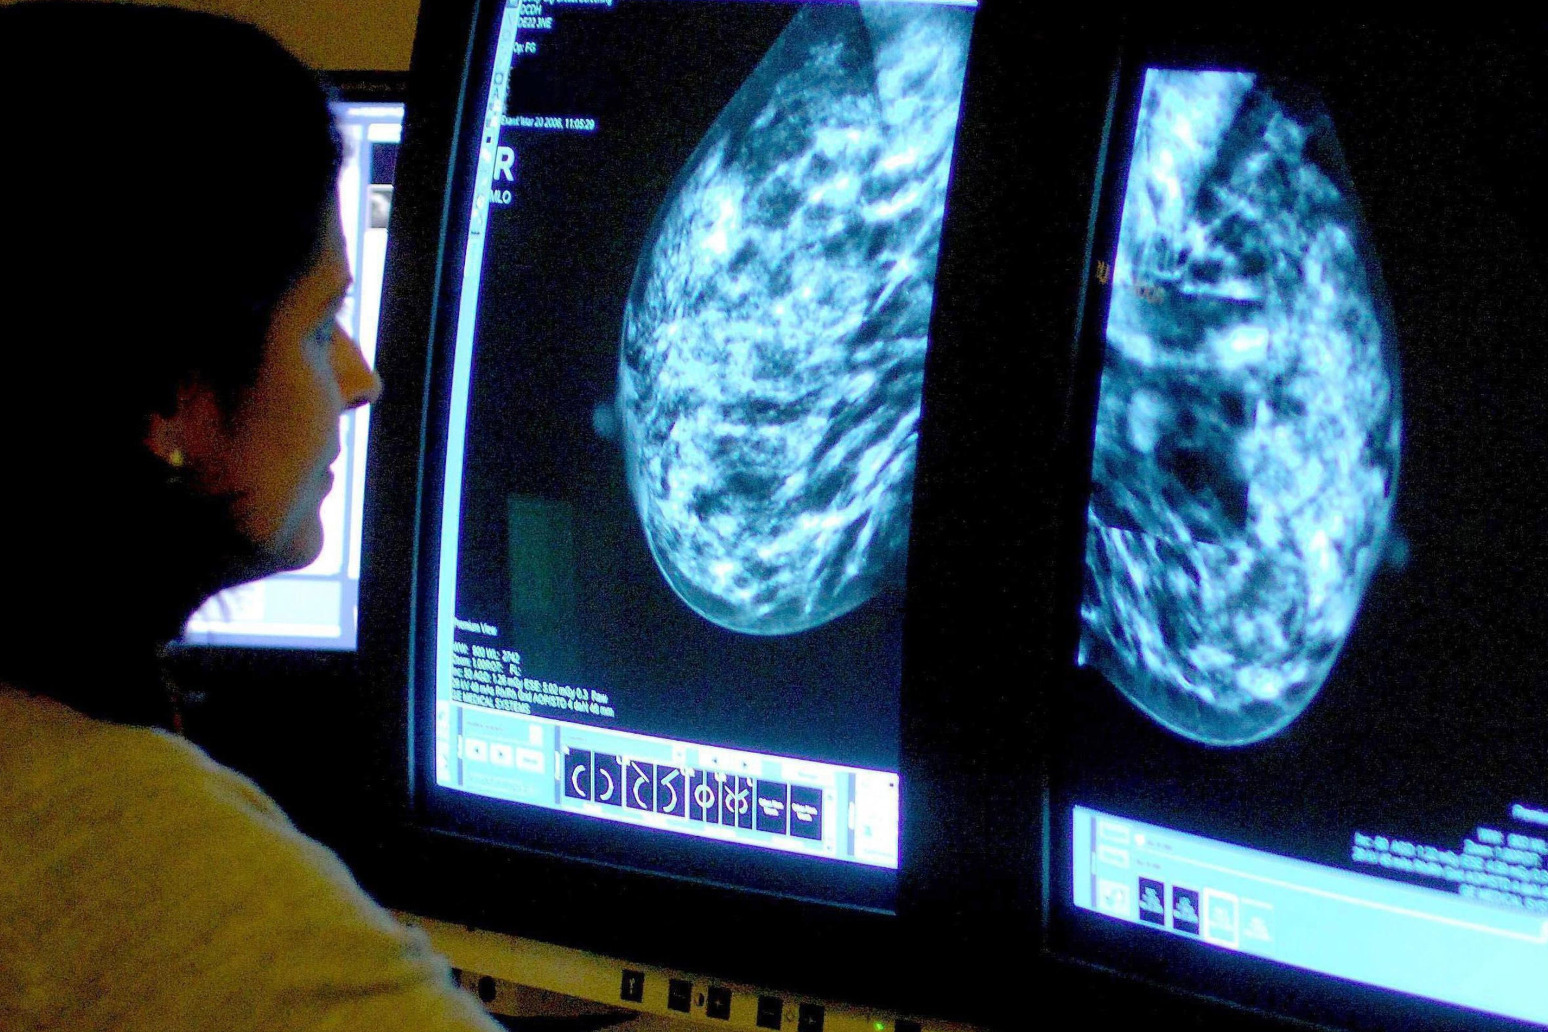 Study reveals worrying lack of cancer referrals